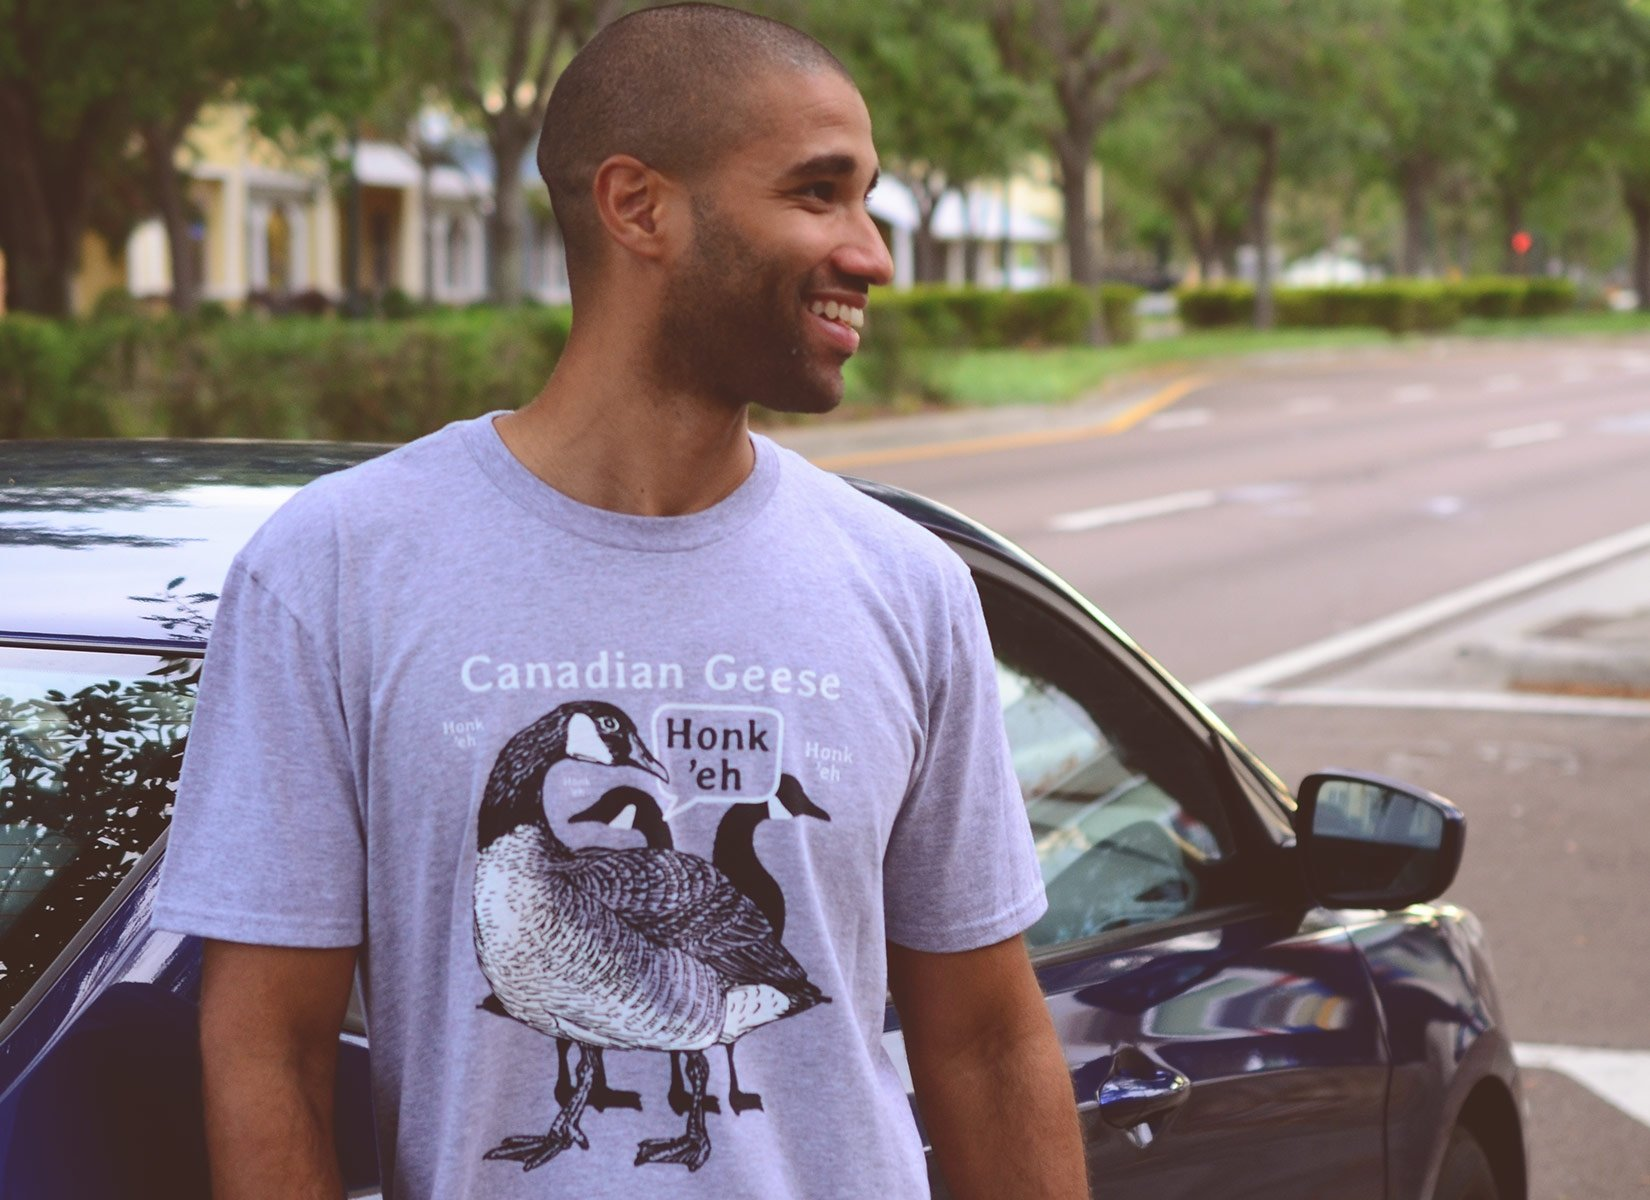 Canadian Geese on Mens T-Shirt